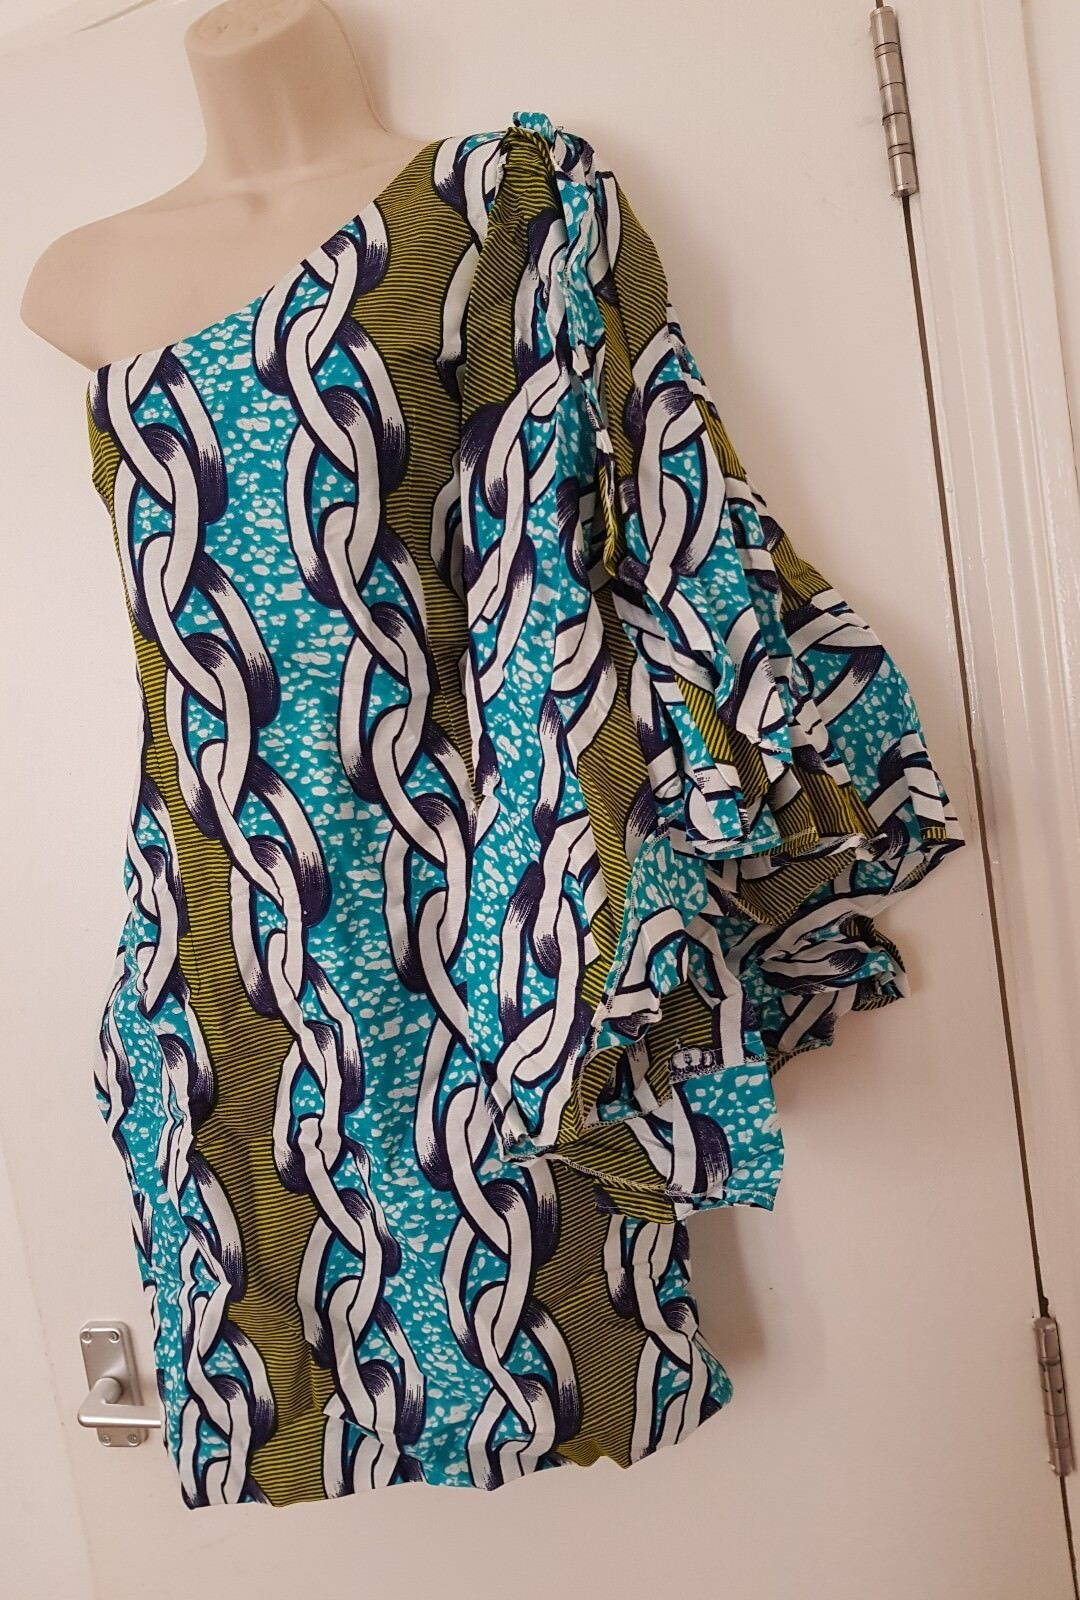 ONE SHOULDER AFRICAN PRINT SUN DRESS UK SIZE S M, Knee Length, FREE UK P&P